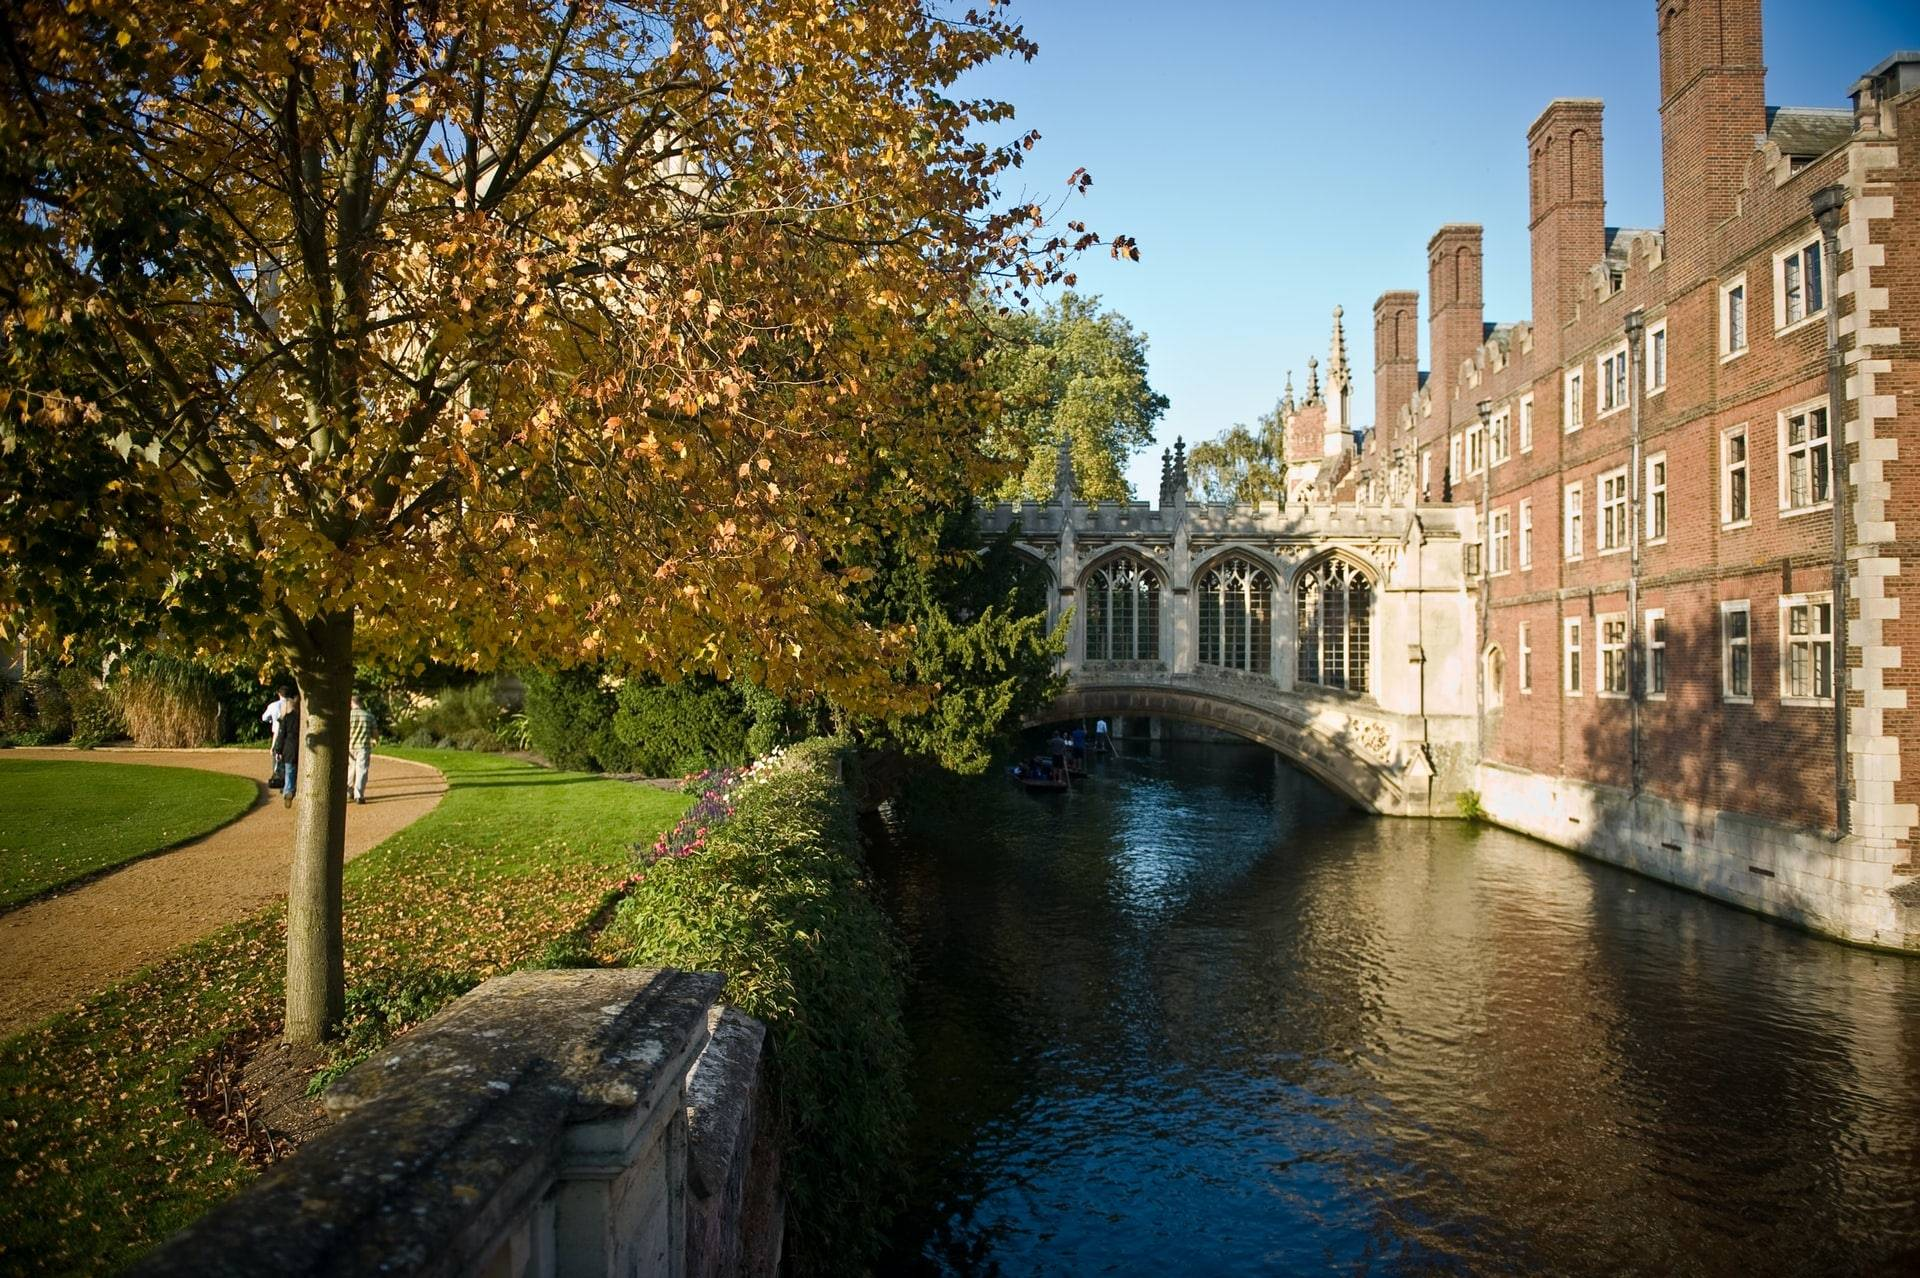 bridge-of-sighs-in-cambridge-going-over-river-cam-day-trips-from-peterborough